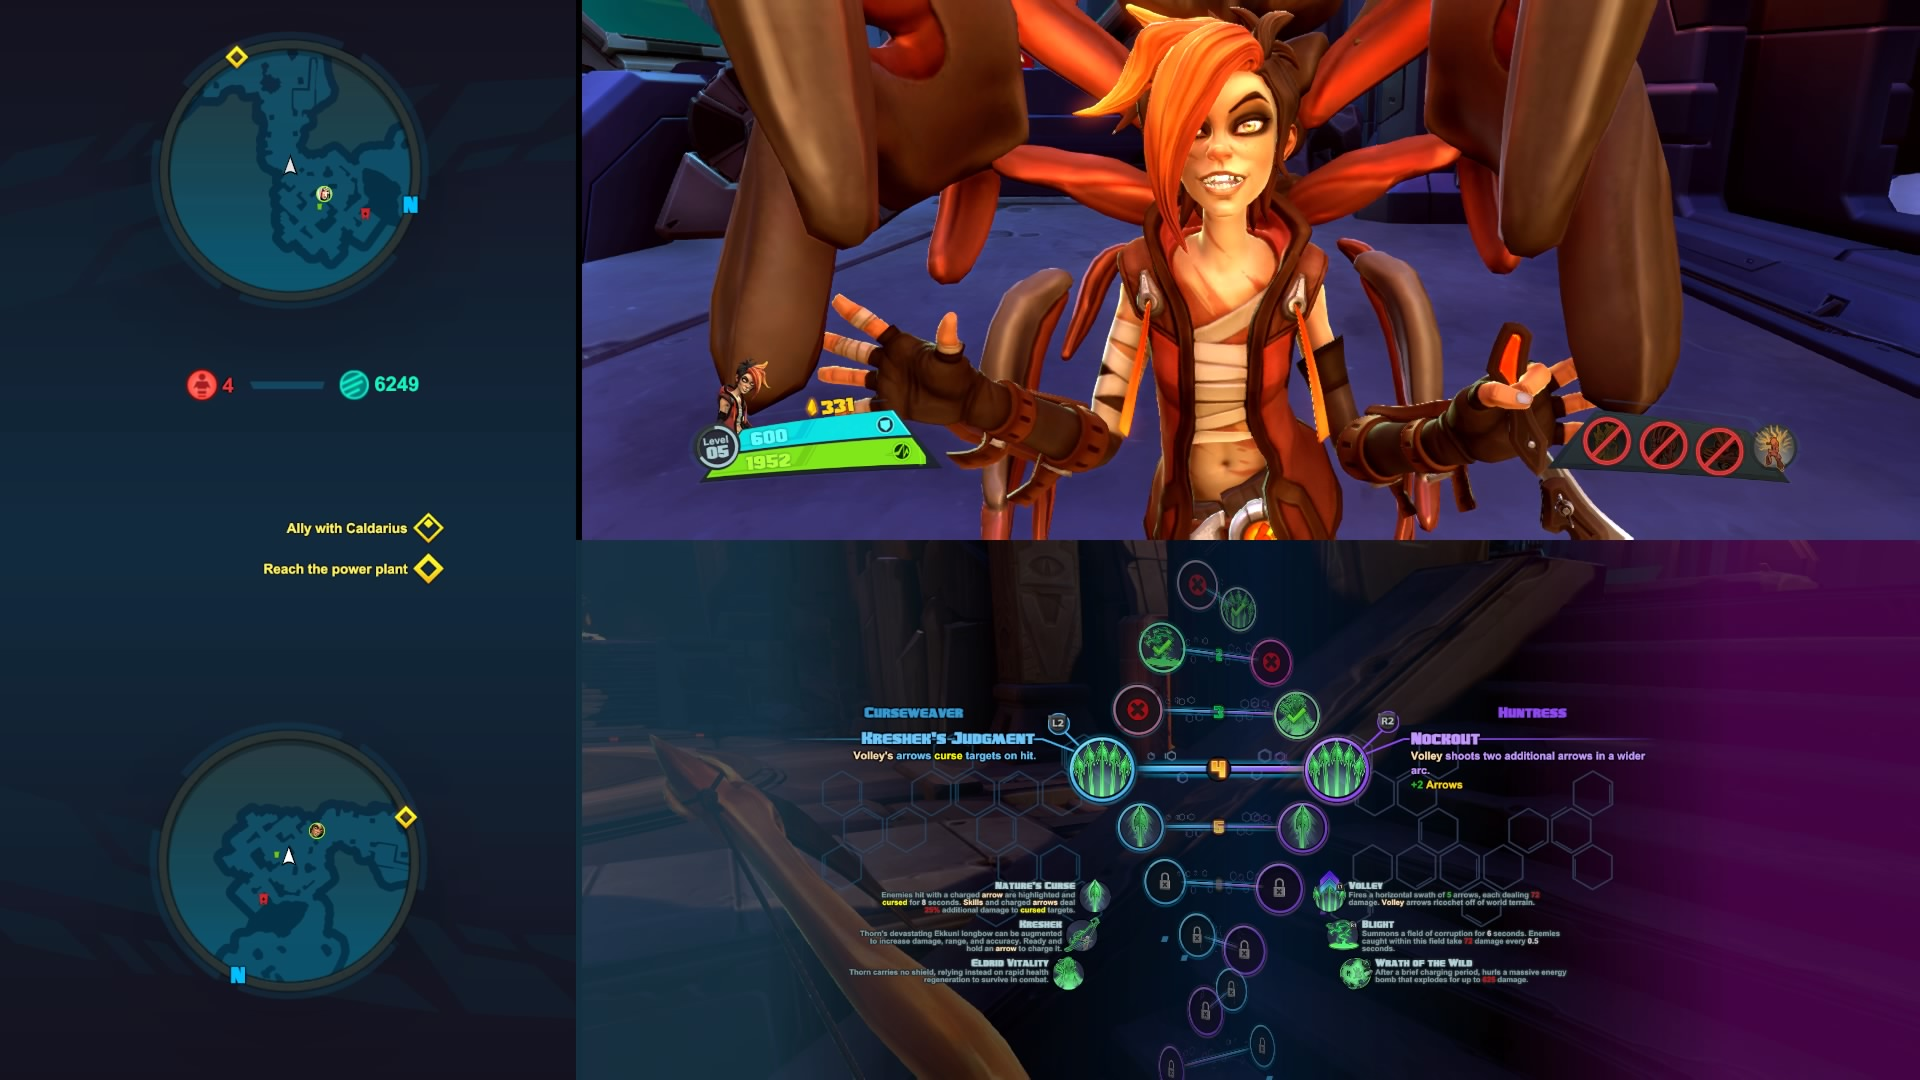 Battleborn splitscreen